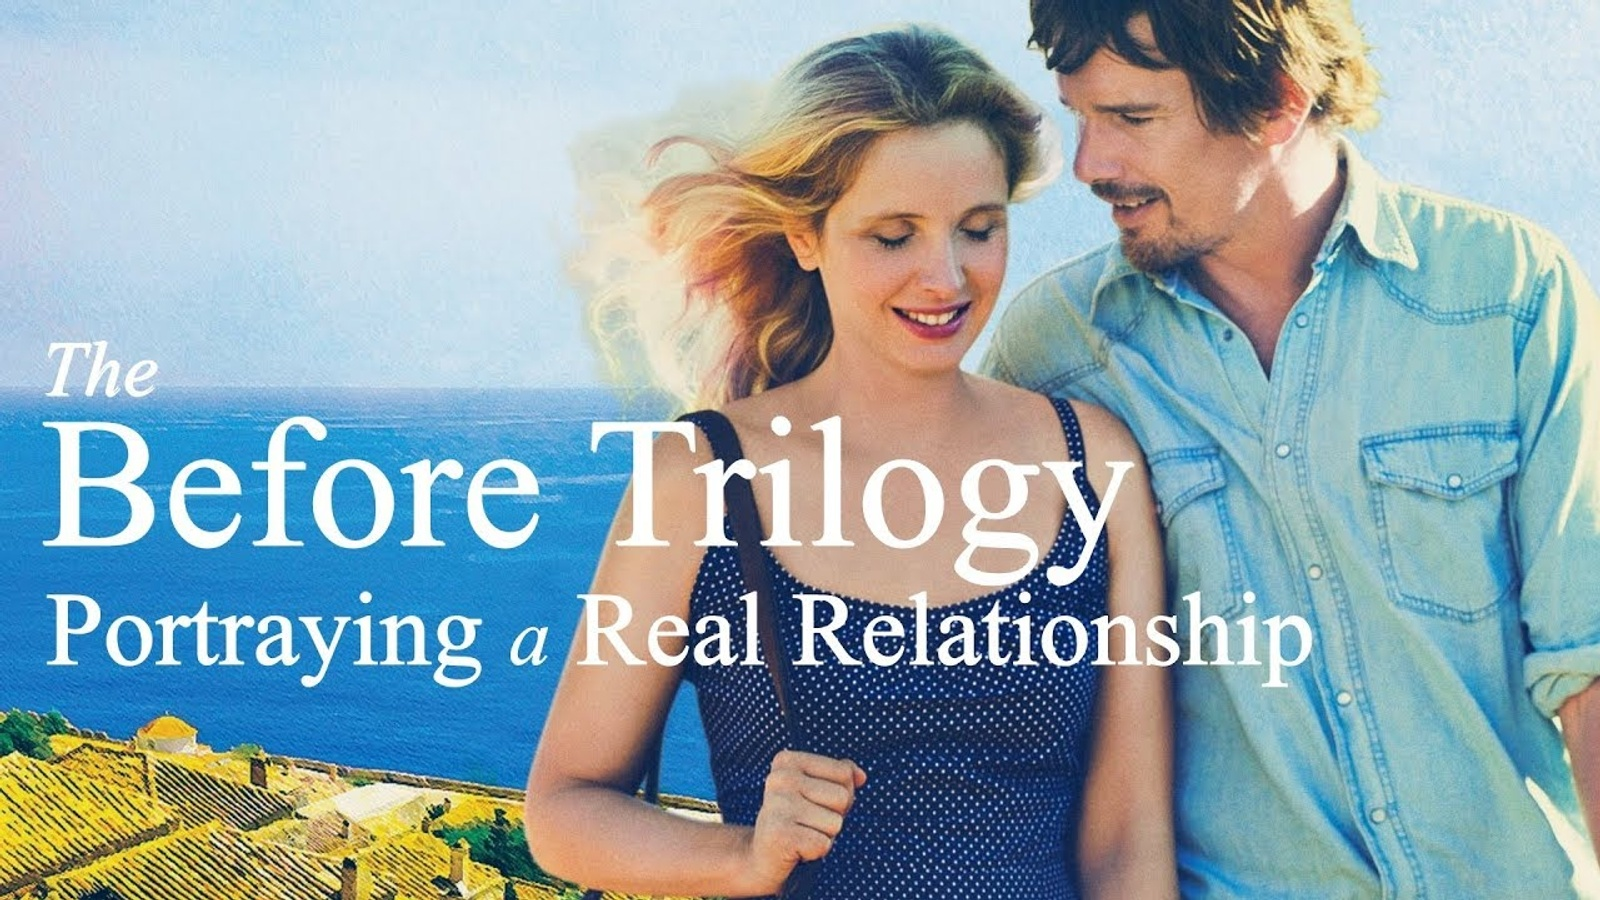 romance movies and real life relationships essay